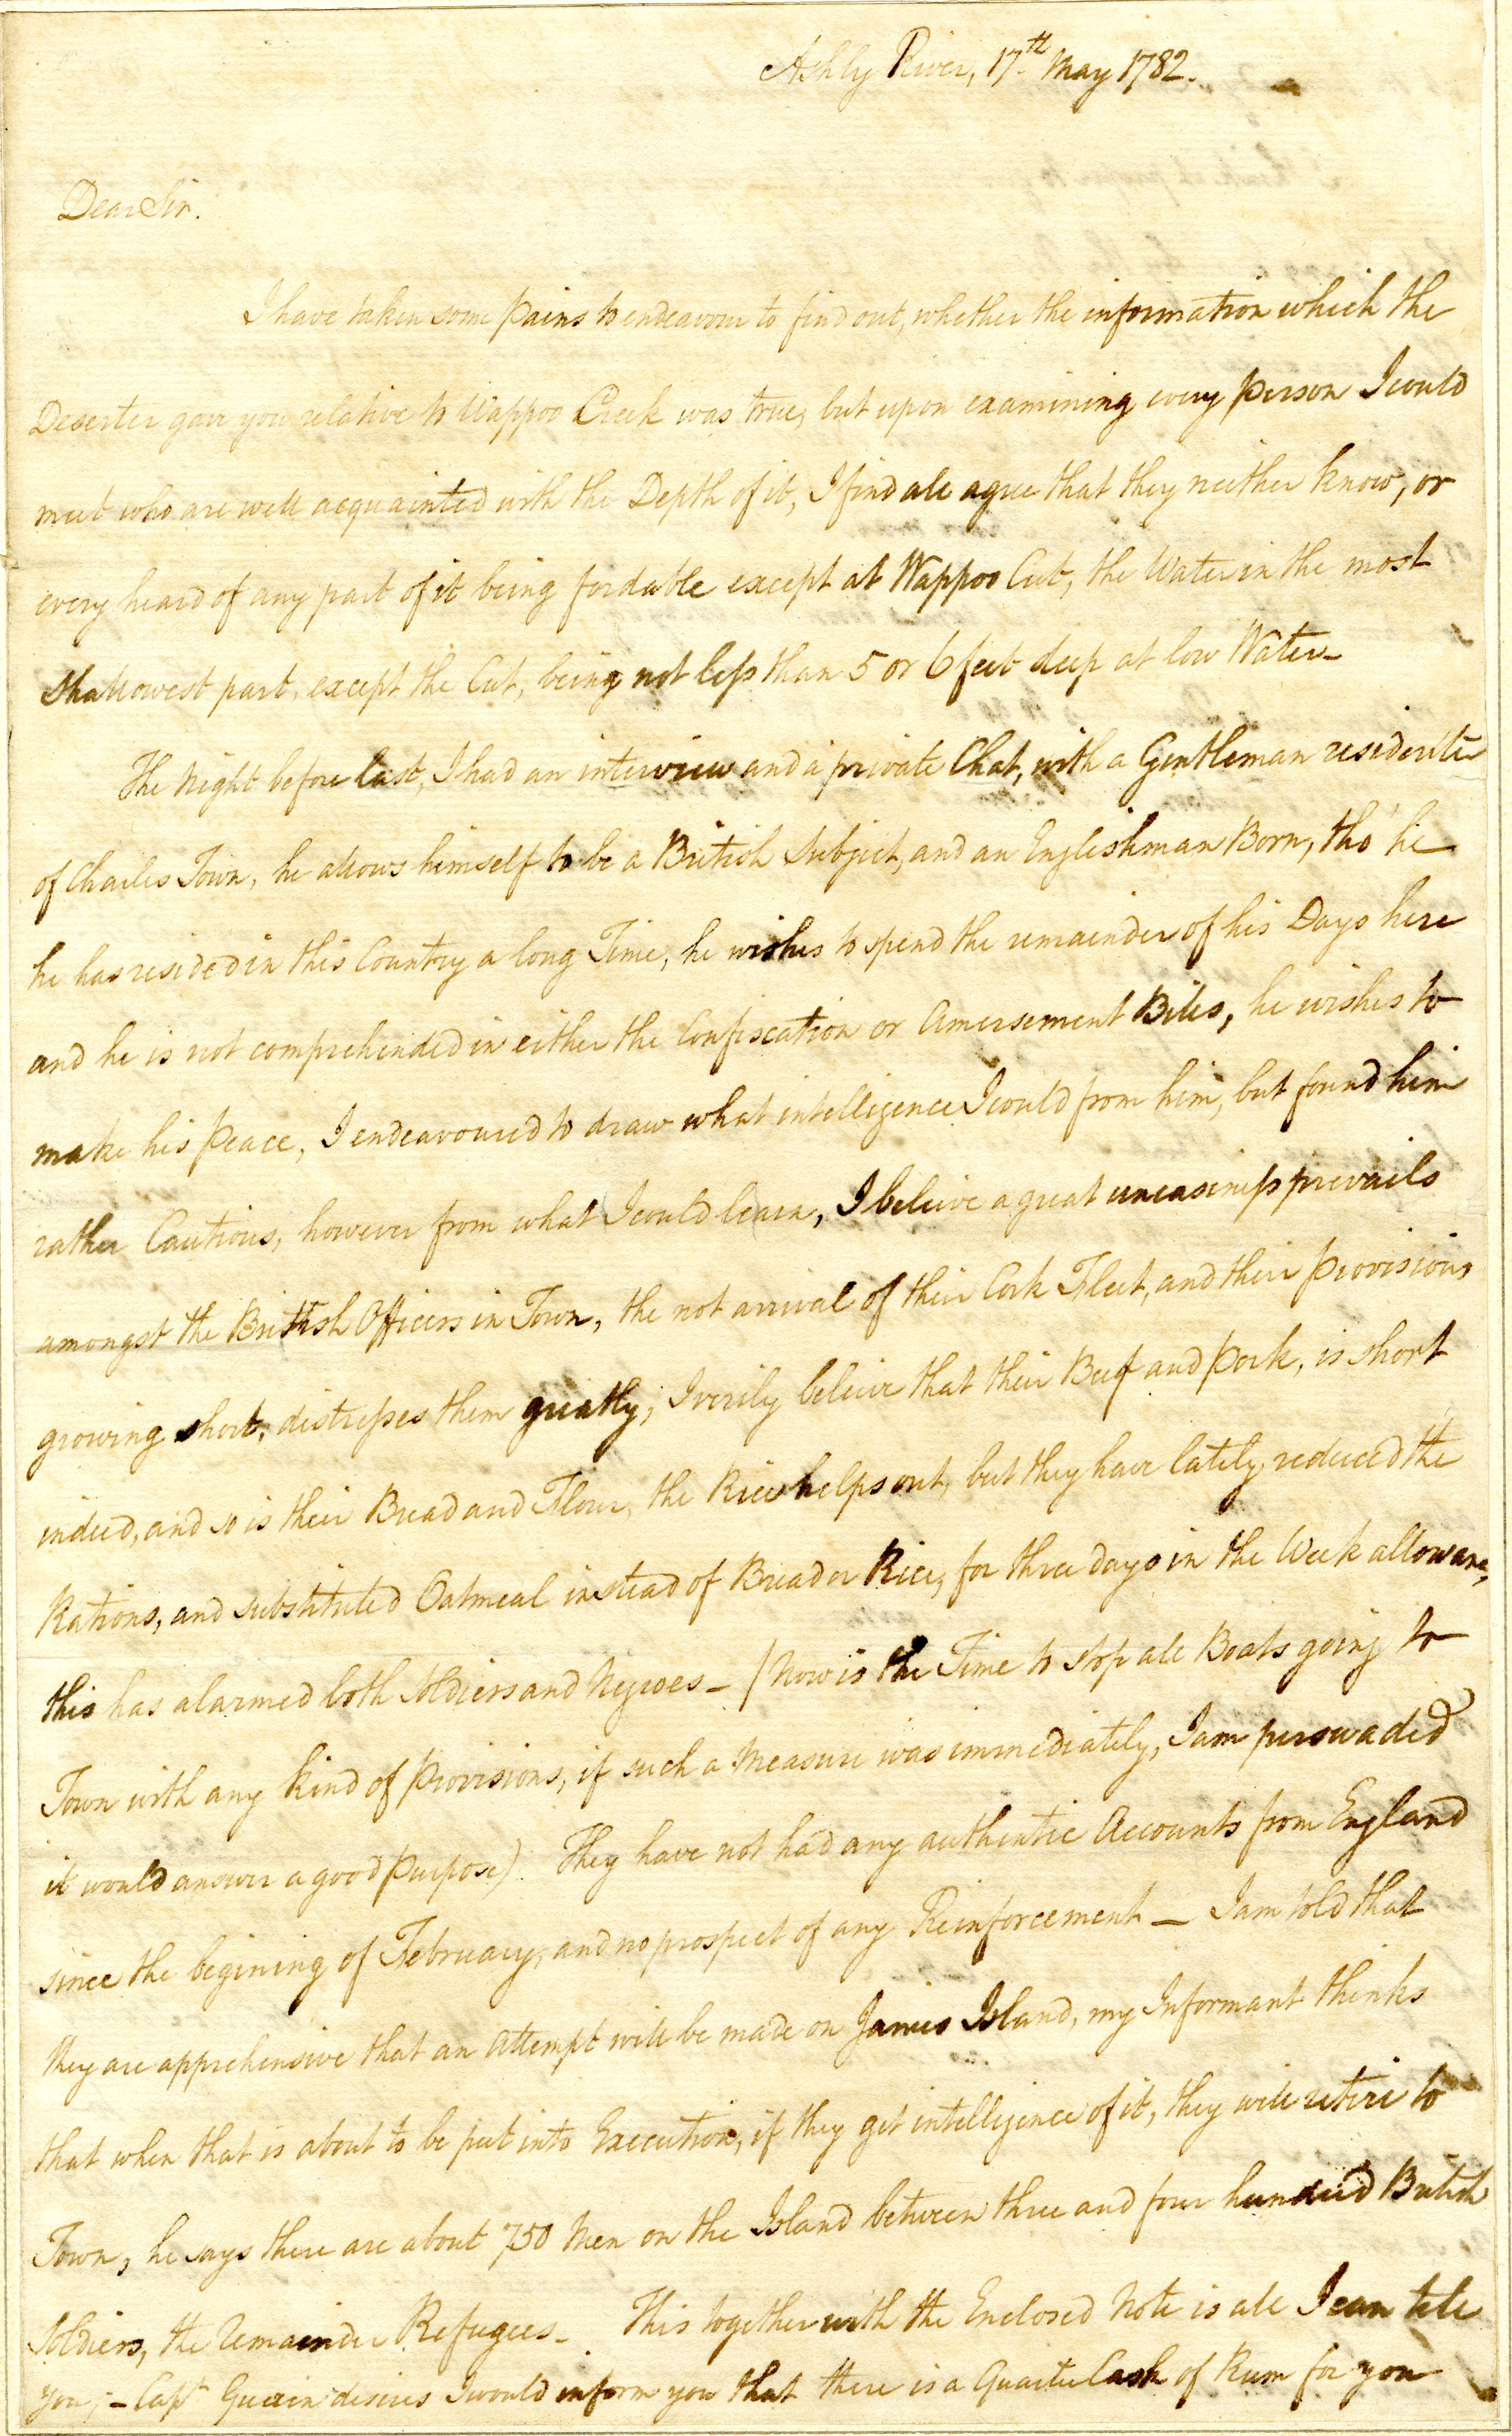 Letter from Thomas Farr to John Laurens